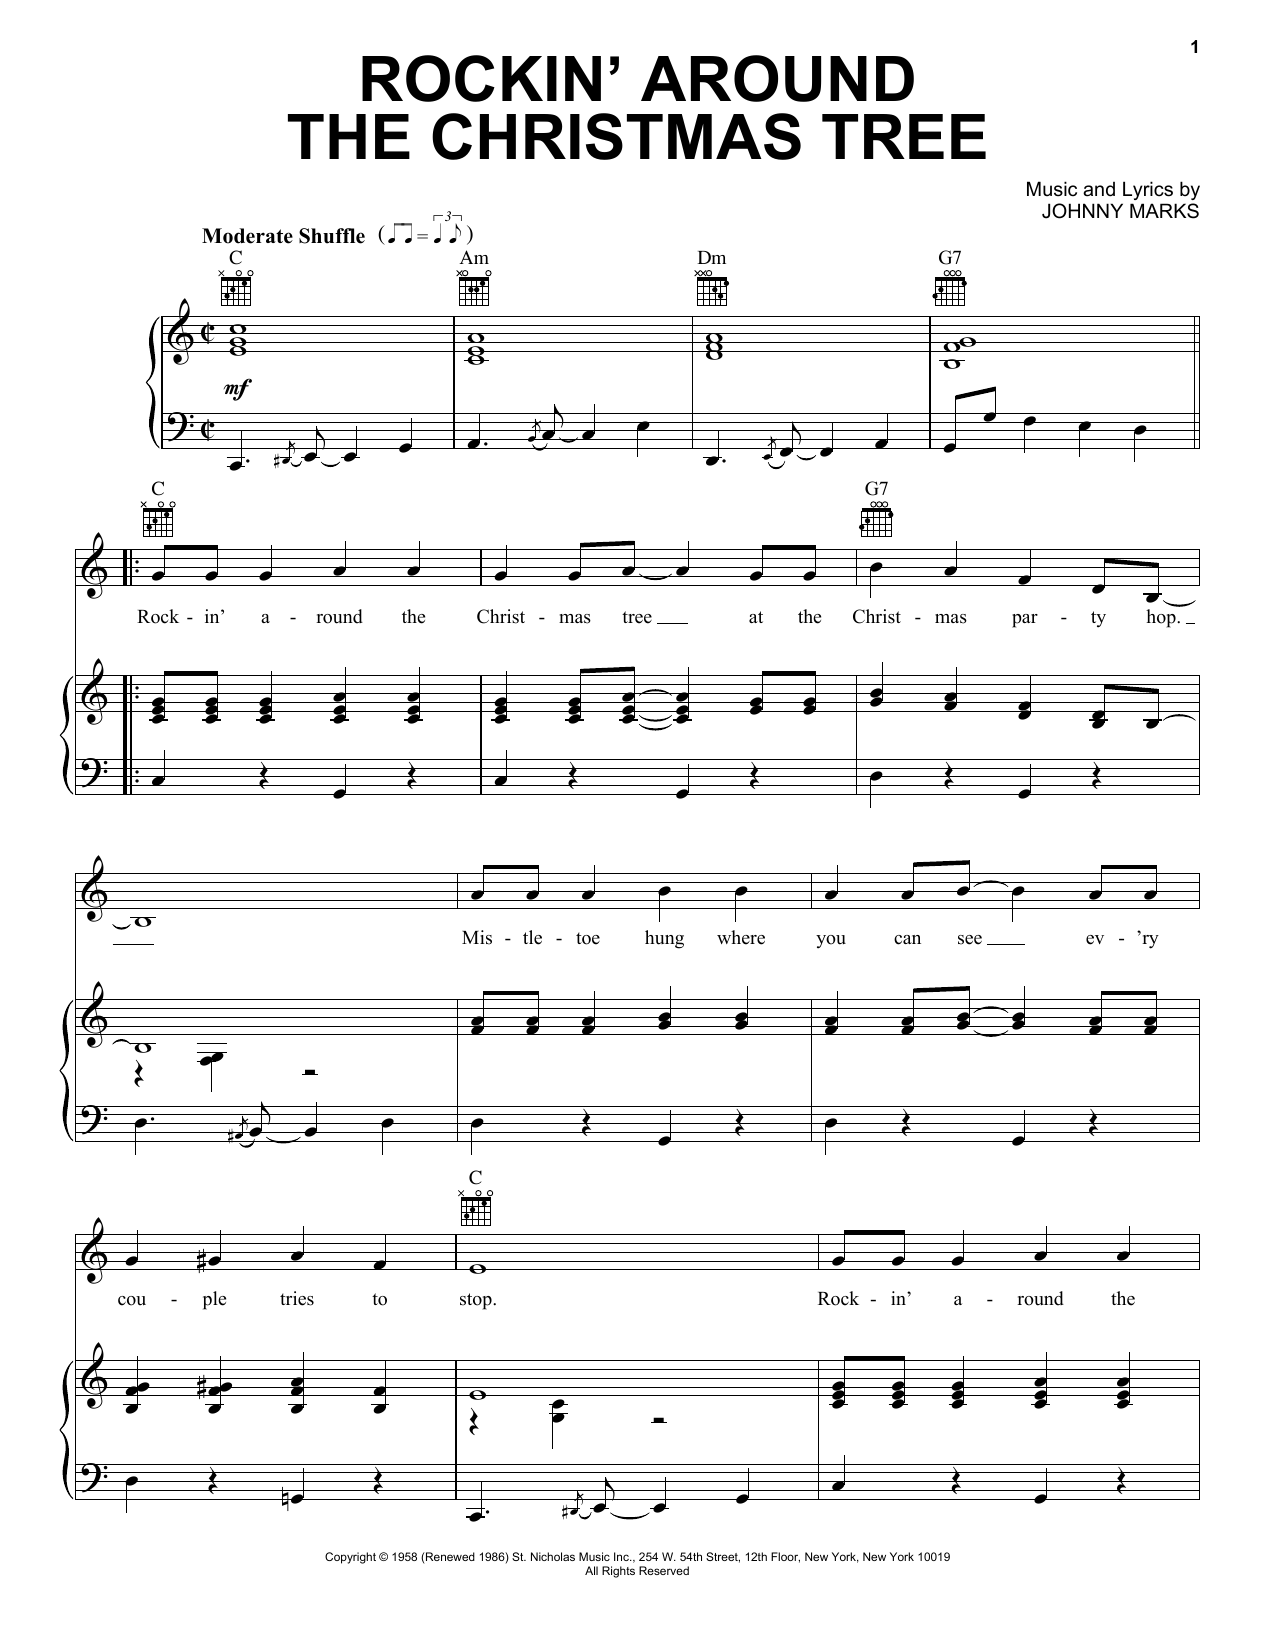 Brenda Lee Rockin Around The Christmas Tree Lyrics.Brenda Lee Rockin Around The Christmas Tree Sheet Music Notes Chords Download Printable Piano Vocal Guitar Right Hand Melody Sku 30252